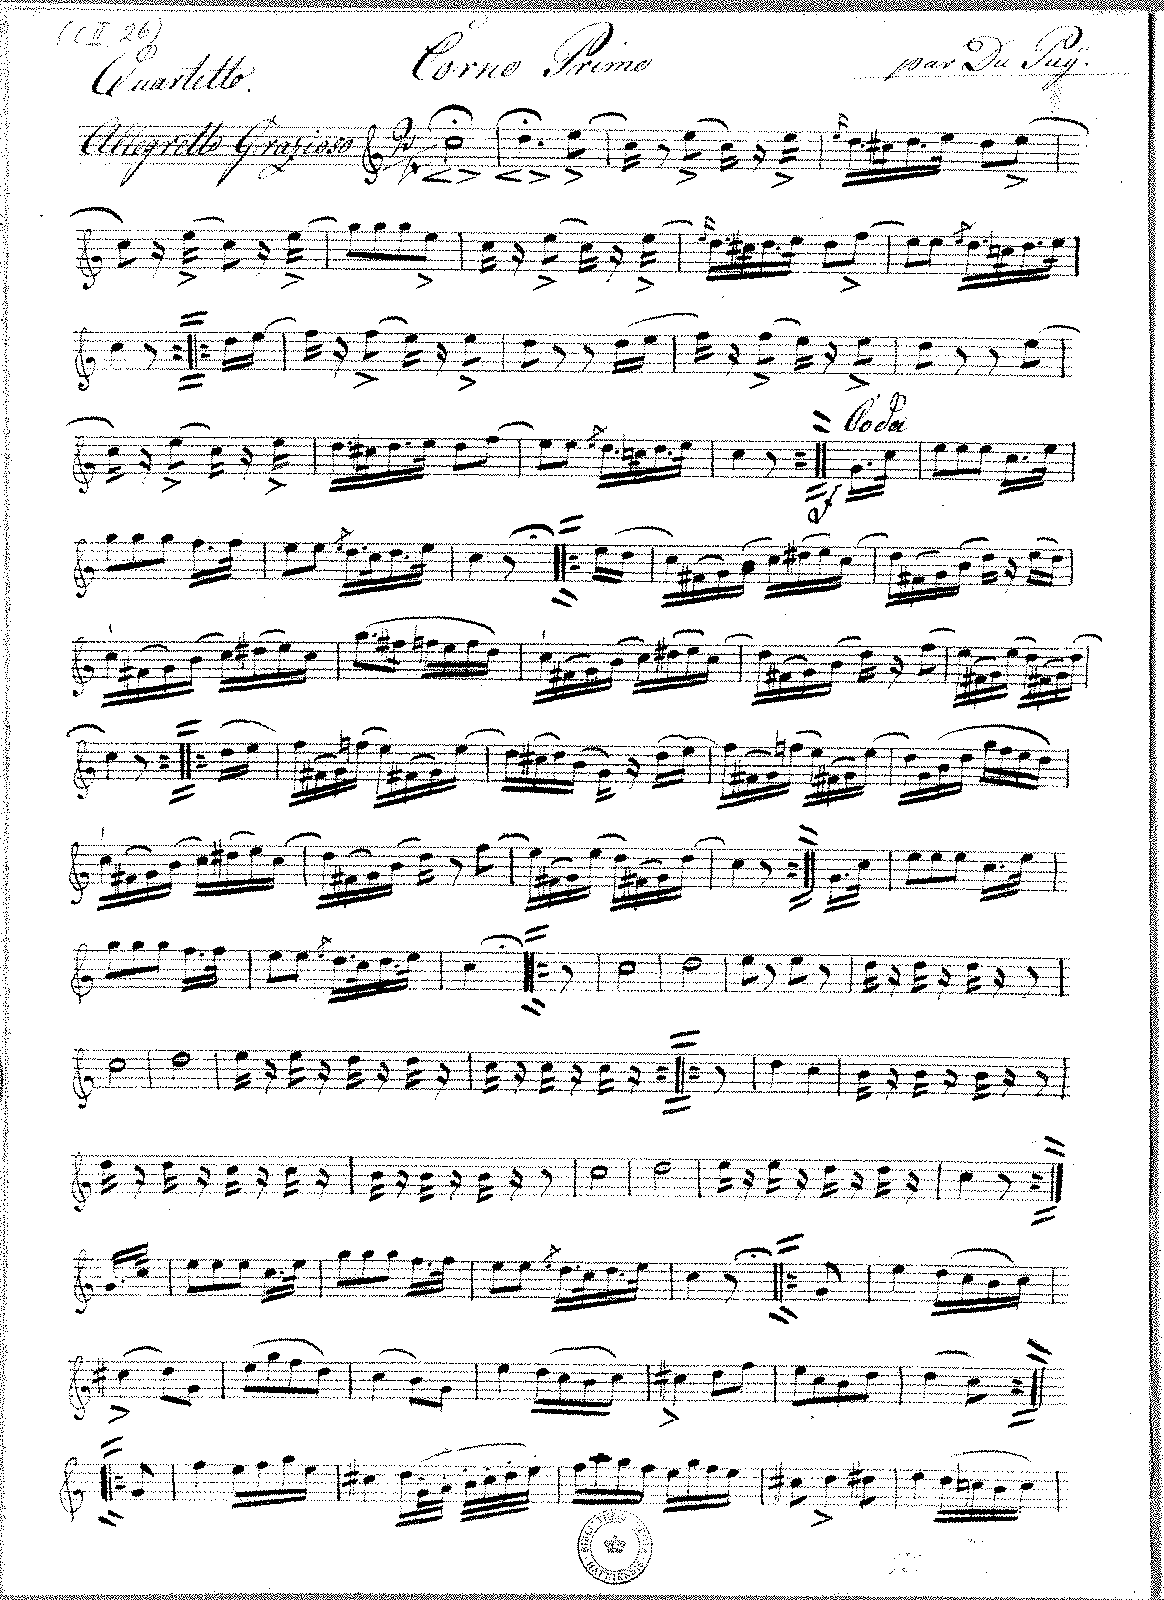 Du Puý - Quartetto.pdf